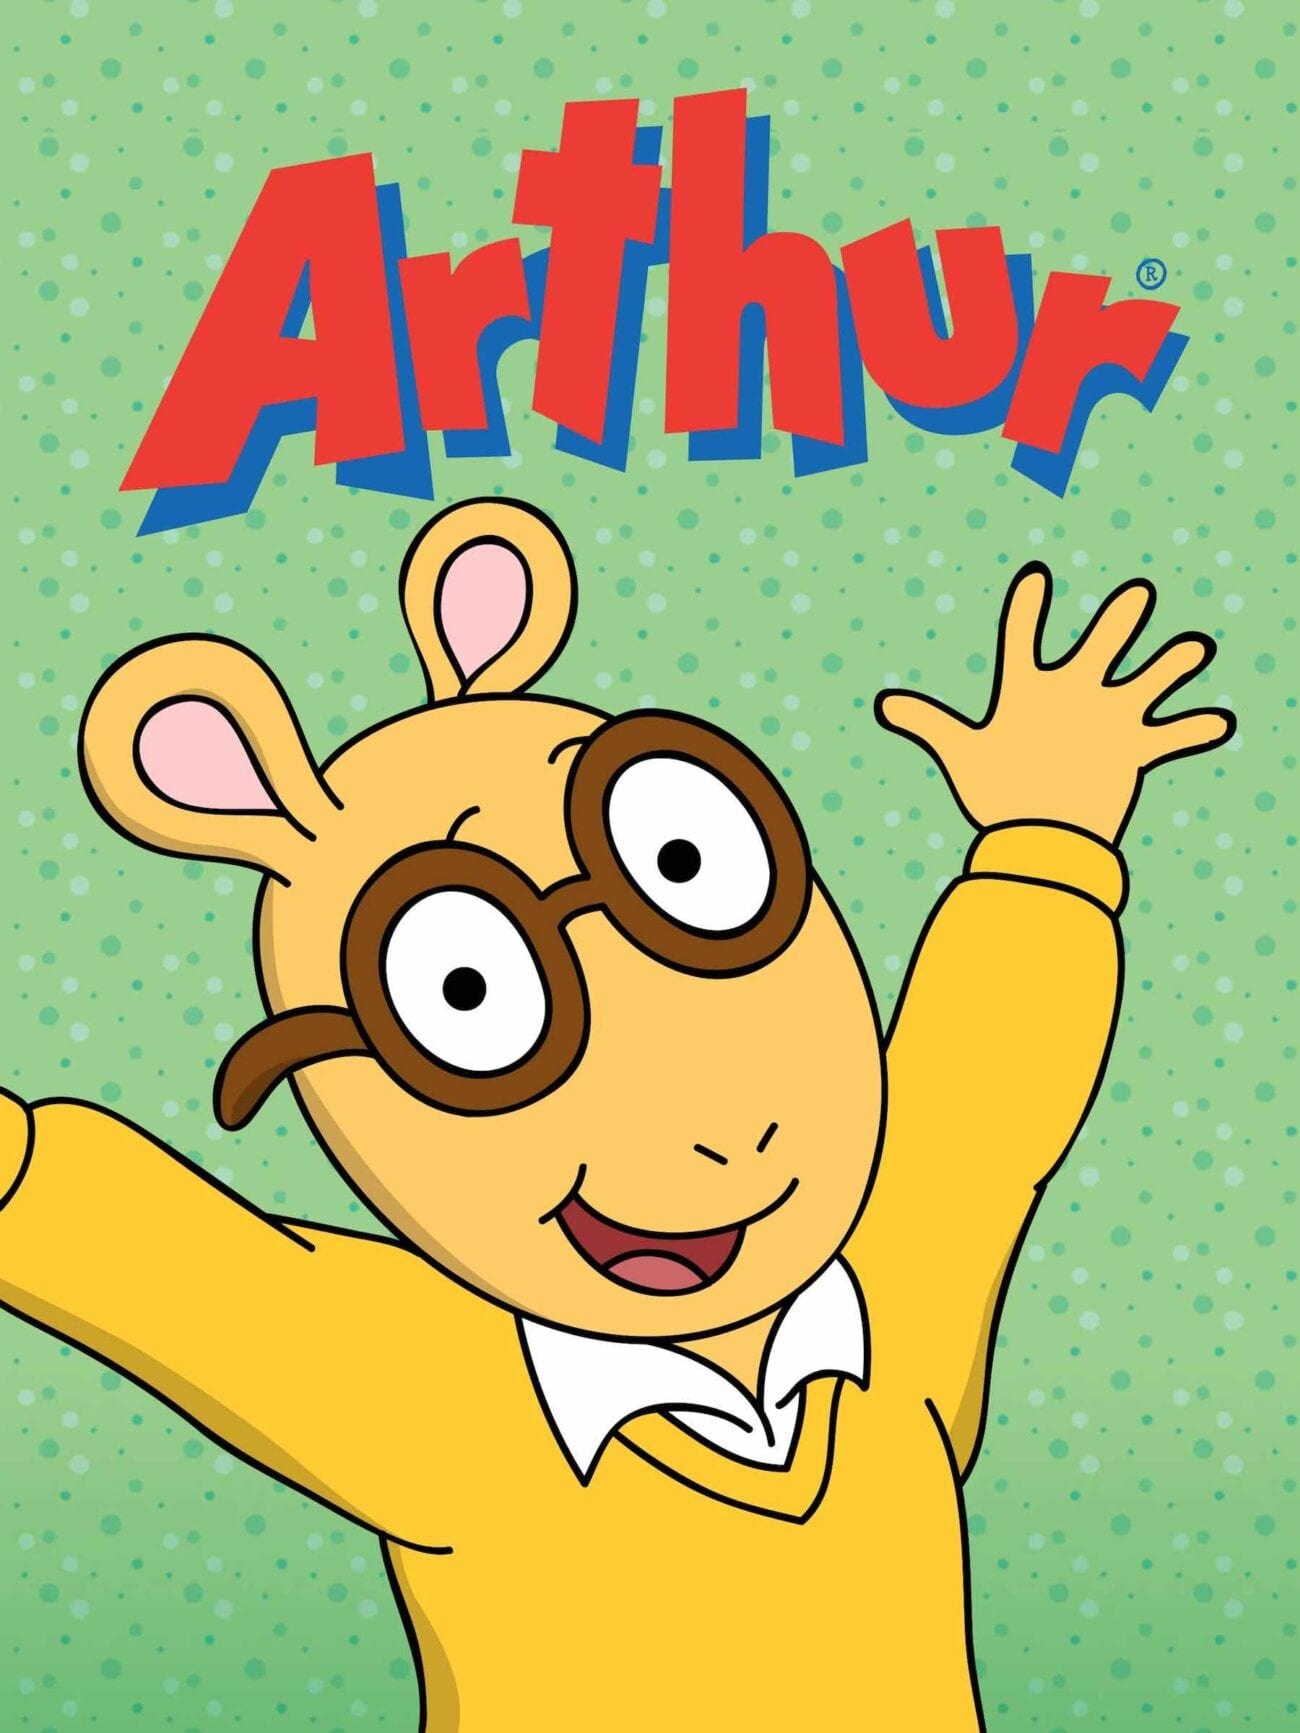 Here are some of our favorite 'Arthur' memes from Twitter in 2021. They'll make you laugh just as much as us!